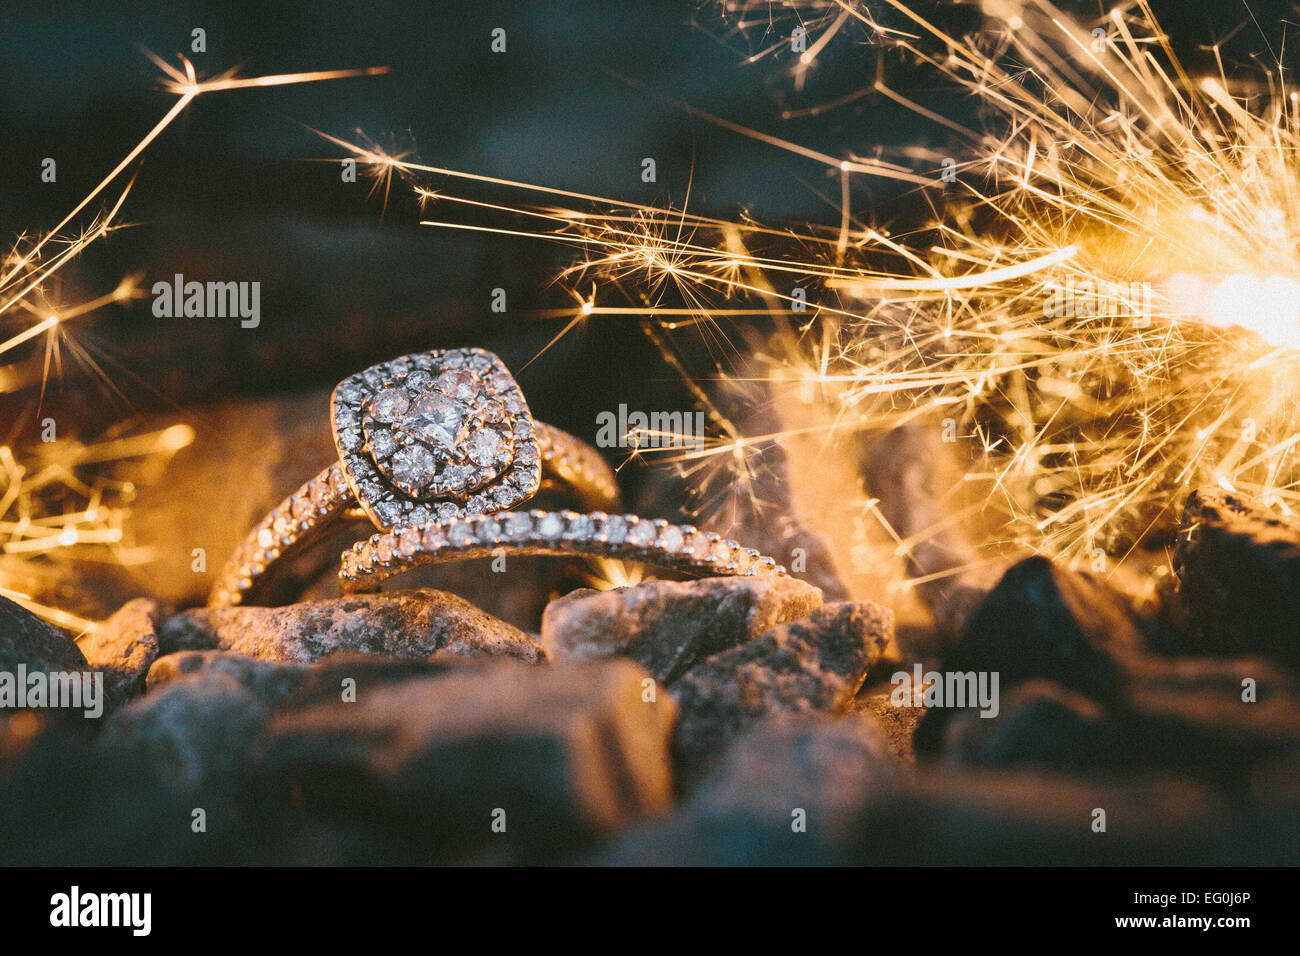 Wedding Rings hang on a sparkler as it burns down illuminating the rings Stock Photo